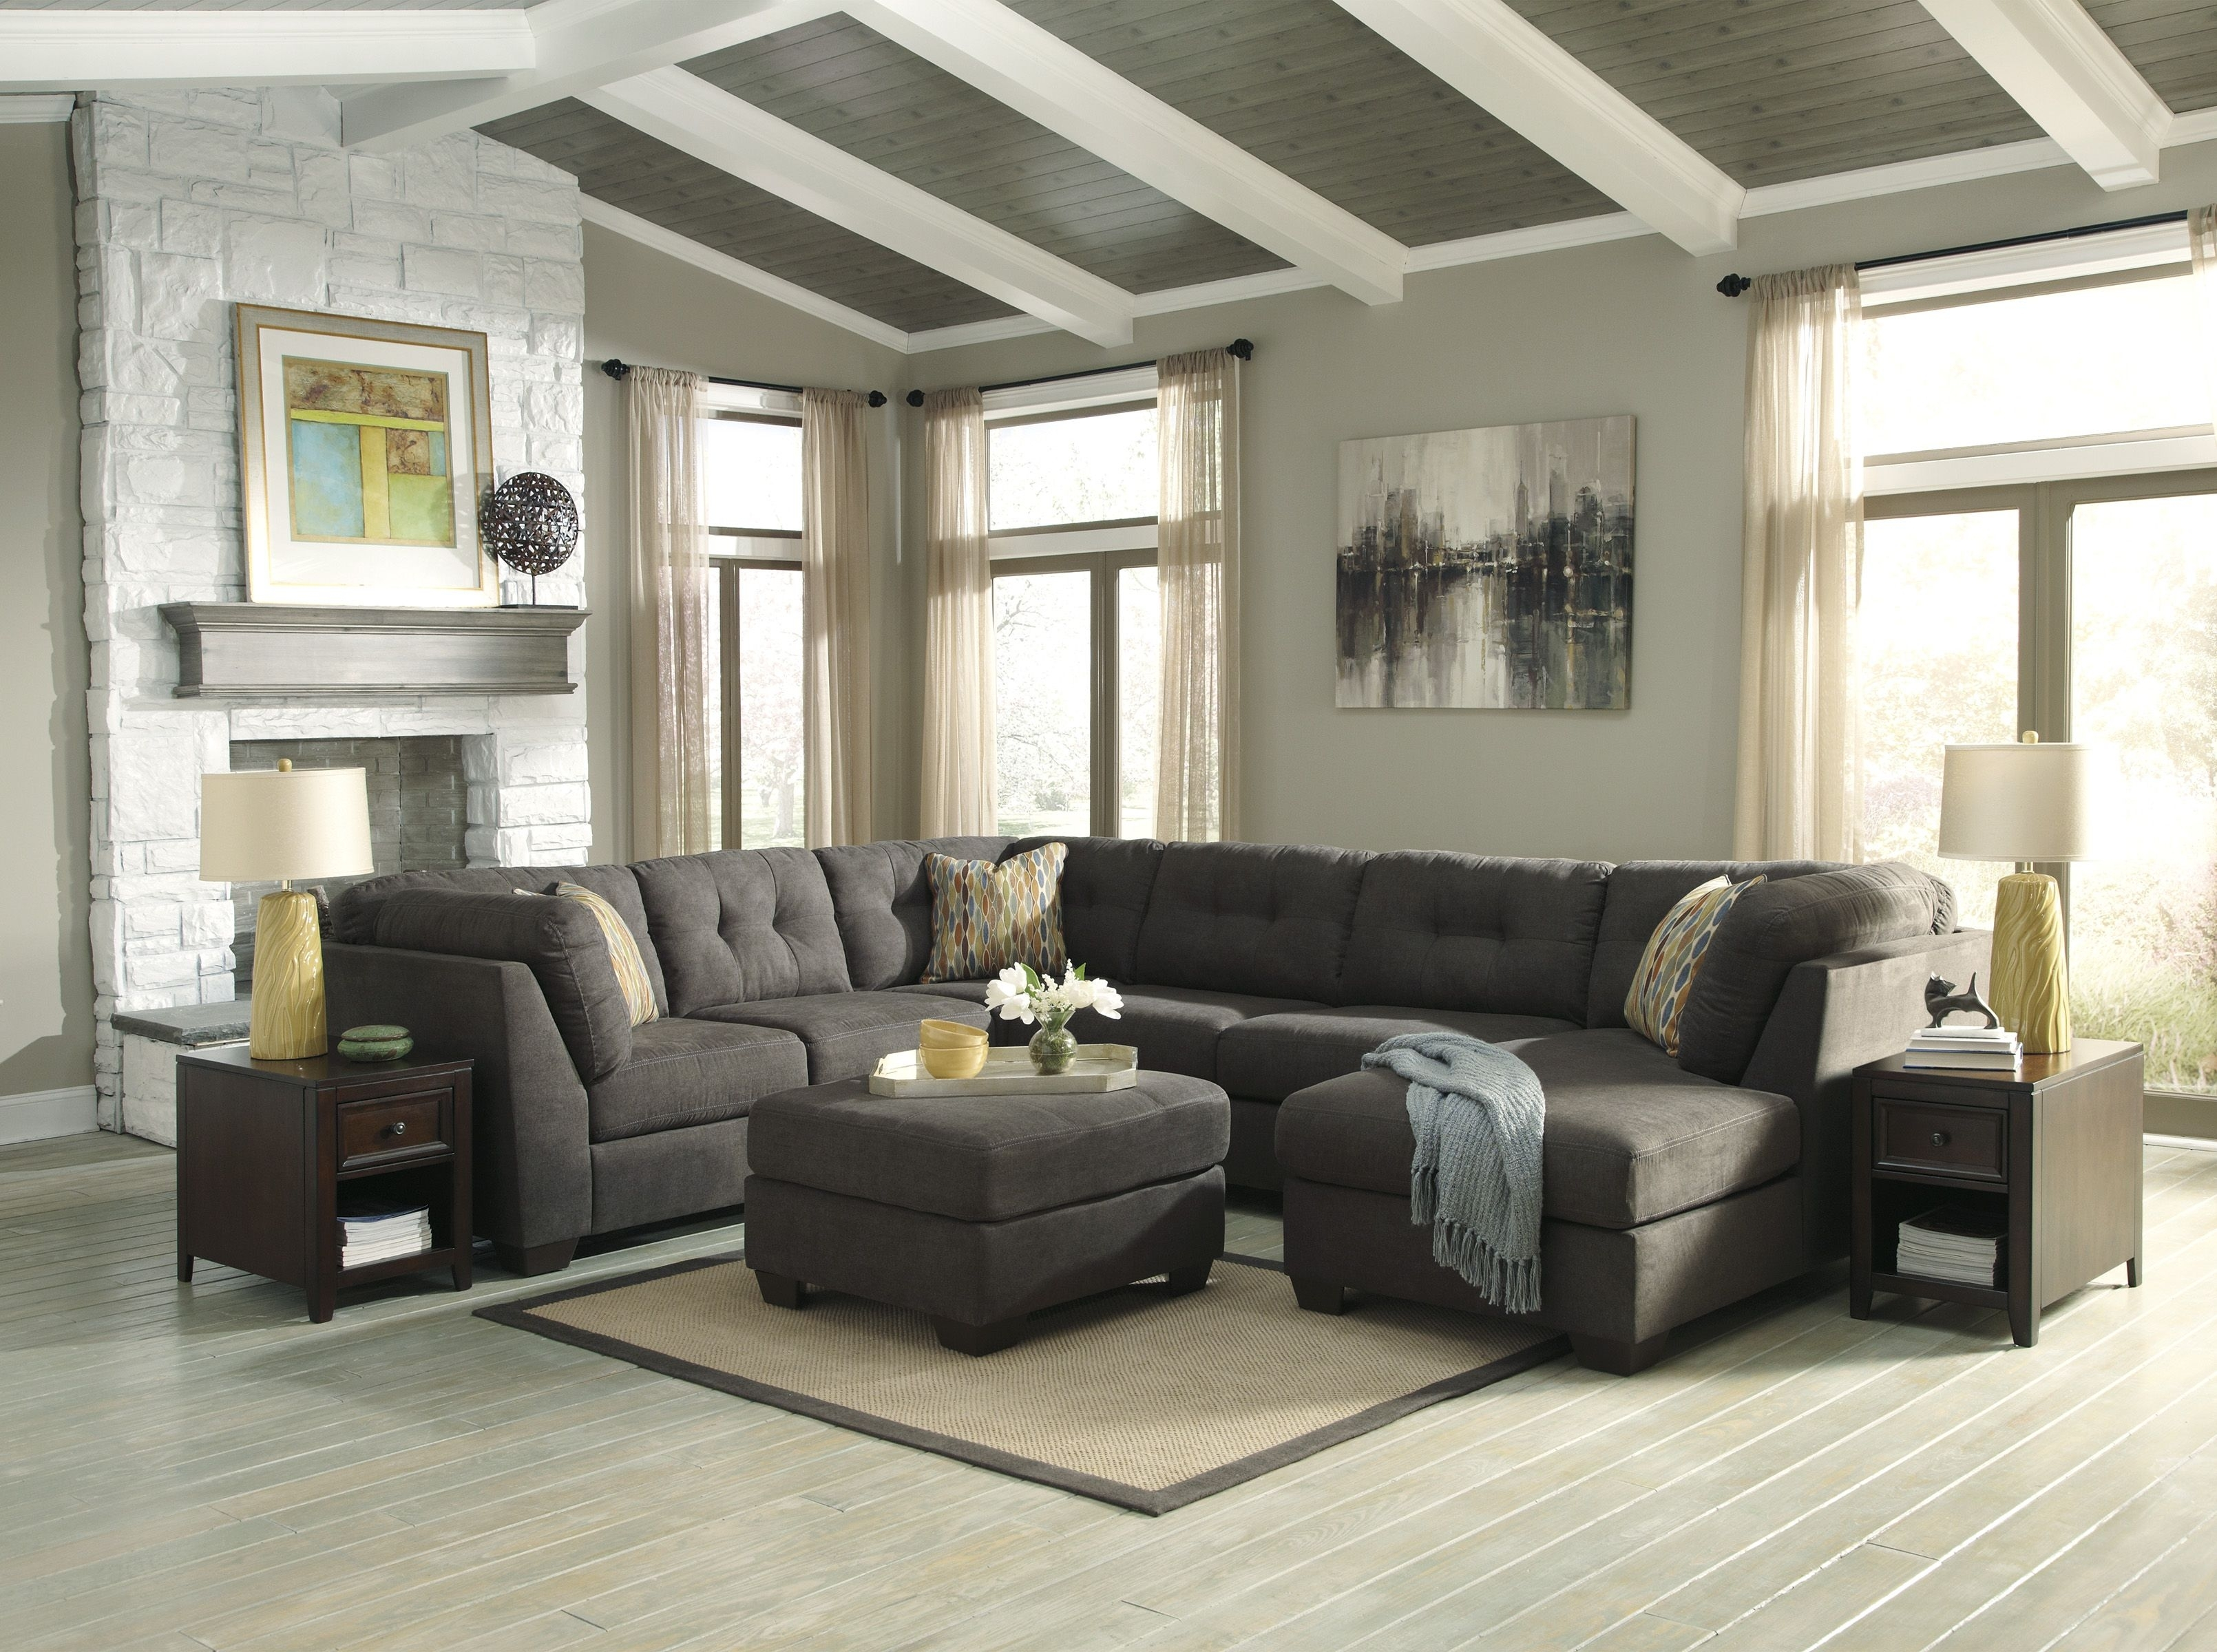 Signature Design Living Room 3 Pc Sectional 197 Sectional – Comfy Inside Karen 3 Piece Sectionals (View 22 of 25)